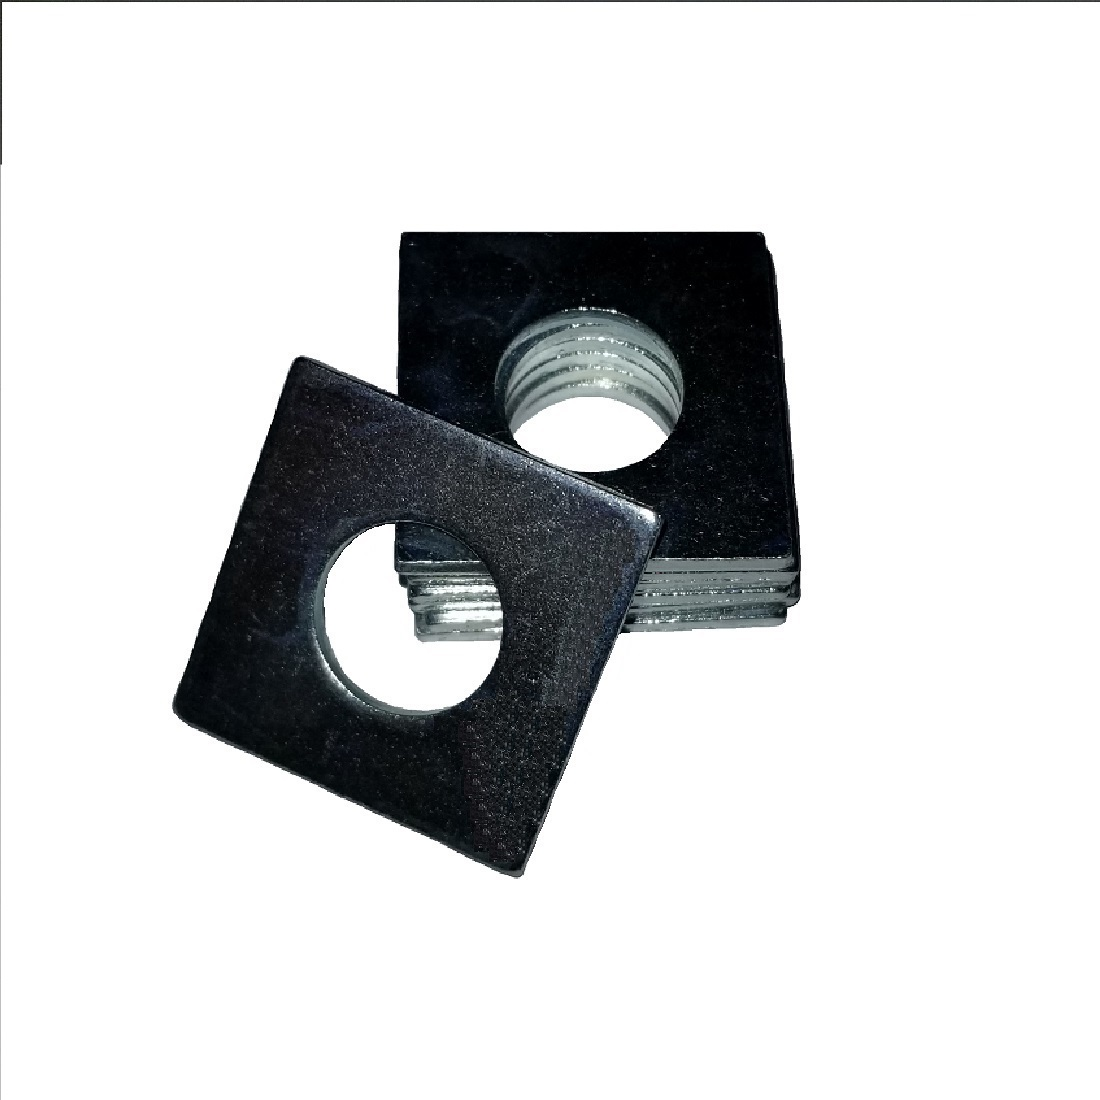 Square OD Washer - 0.187 ID, 0.437 OD, 0.048 Thick, Low Carbon Steel - Soft, Zinc & Clear